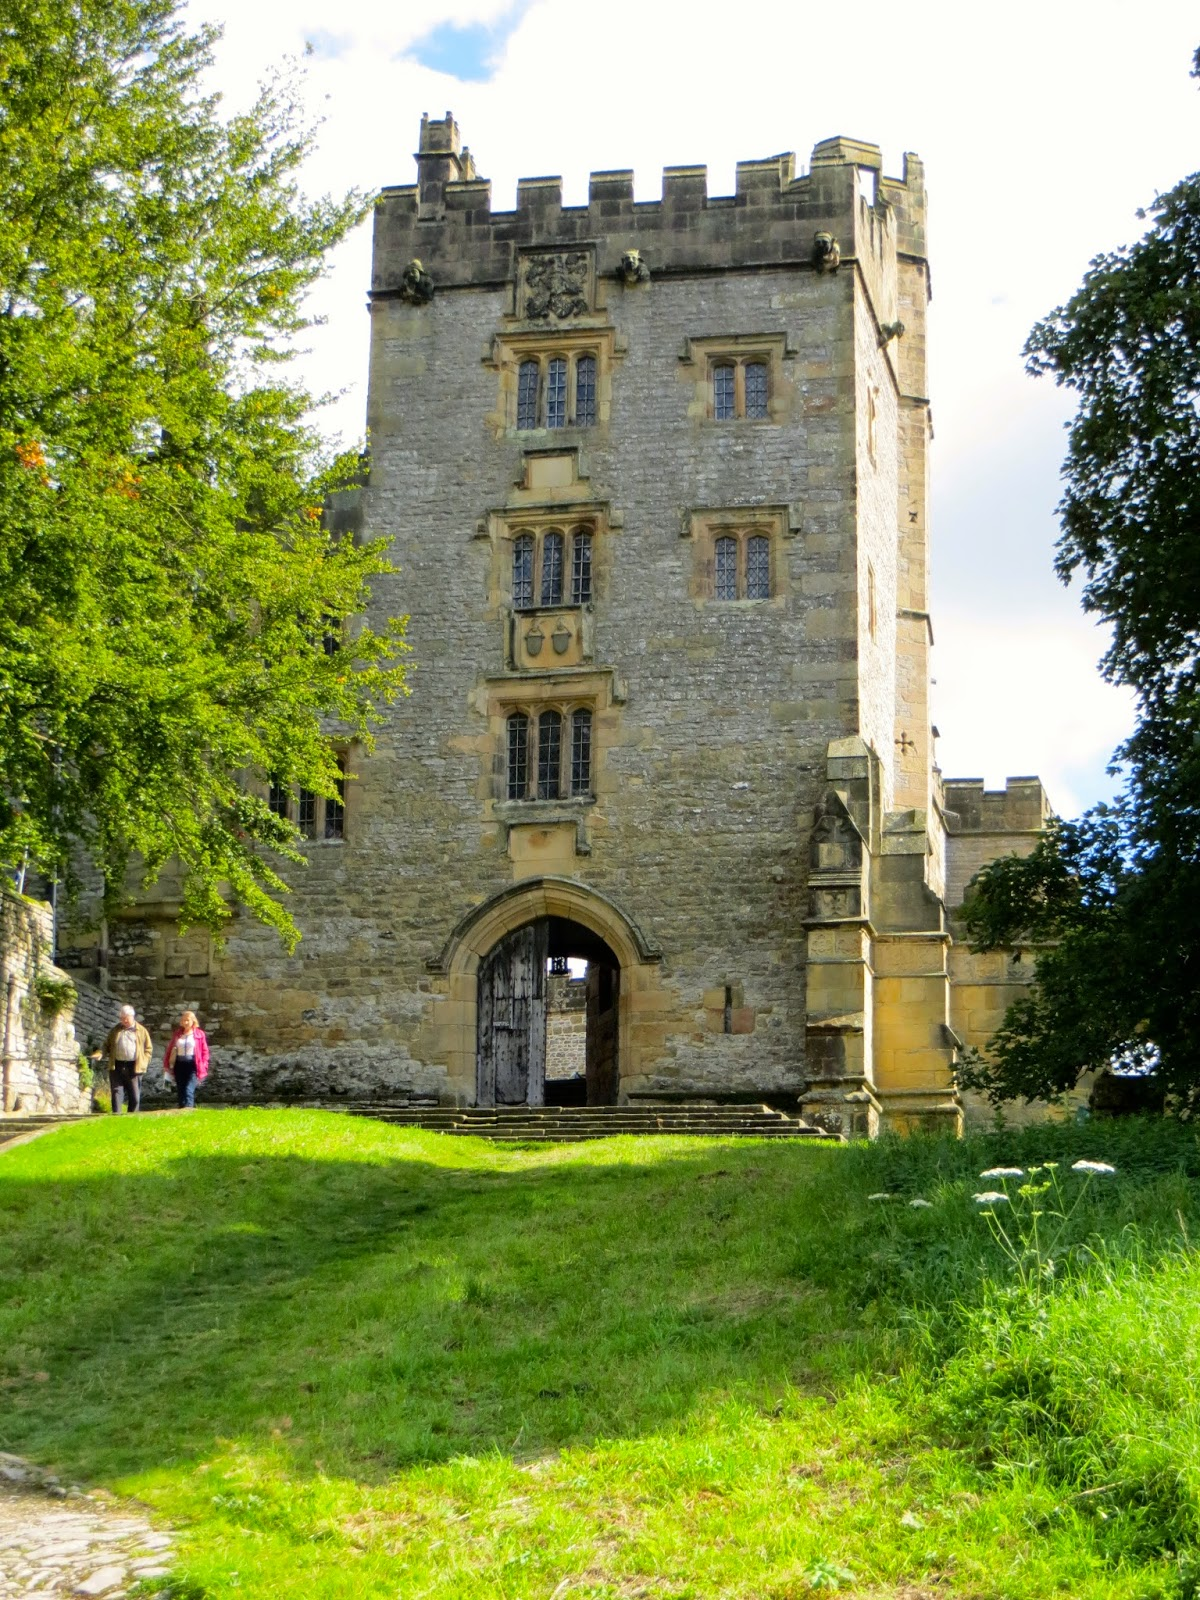 Haddon Hall Bakewell, Curiouser and Curiouser: Haddon Hall, Bakewell Derbyshire